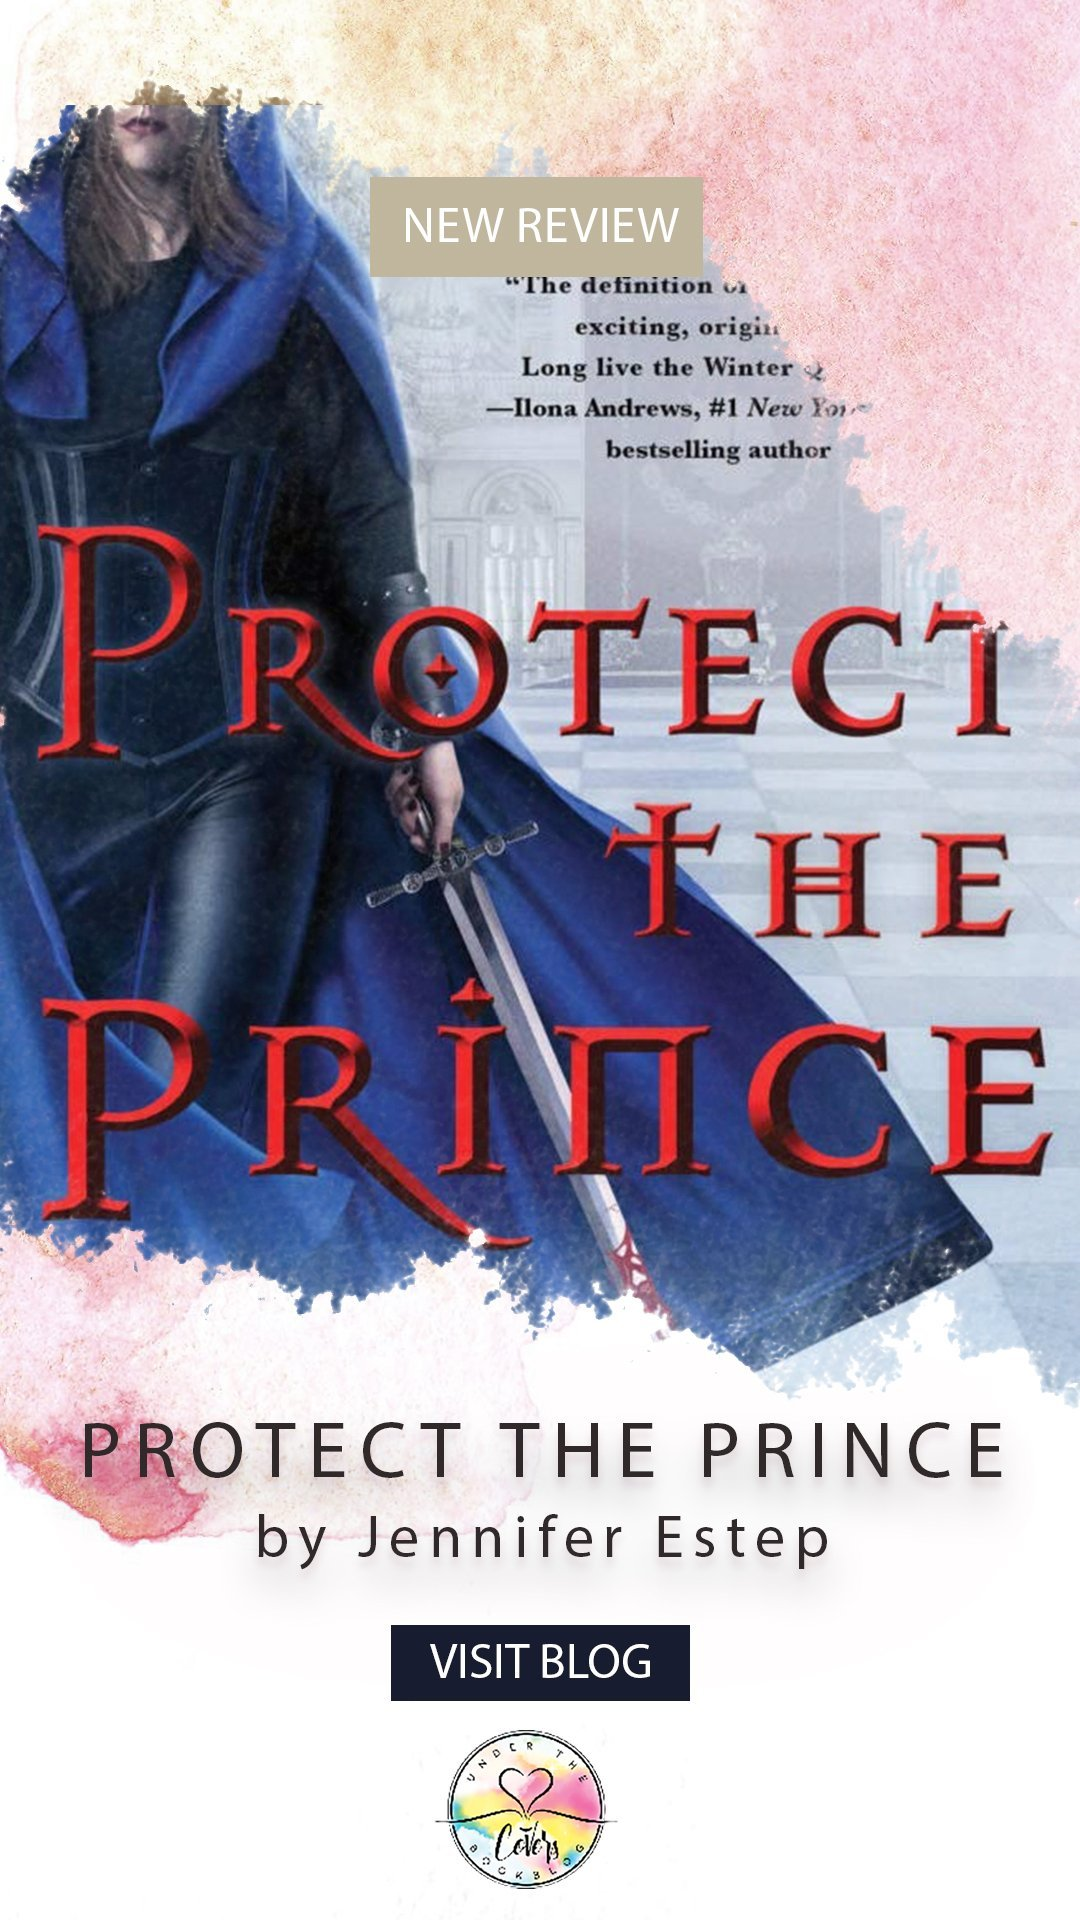 ARC Review: Protect the Prince by Jennifer Estep